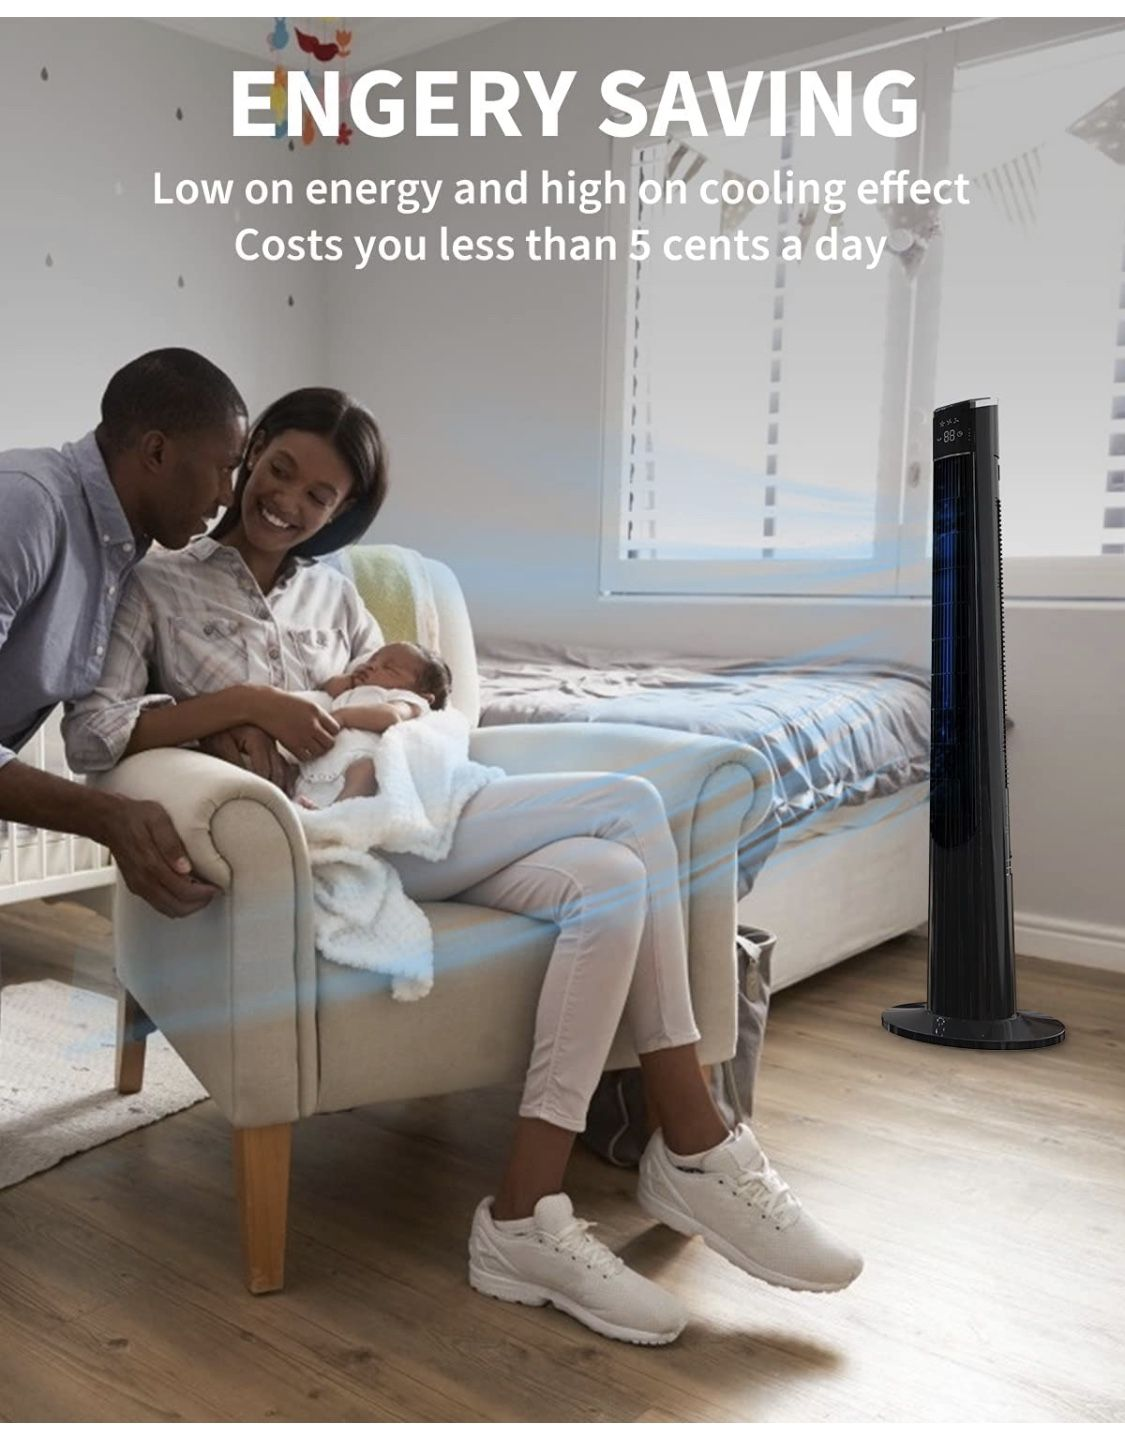 Tower Fan for Bedroom- 48'' Oscillating Fan with Remote, Cooling, Quiet, Large LED Display, 12-Hour Timer, Electric Black Standing Bladeless Fan for W